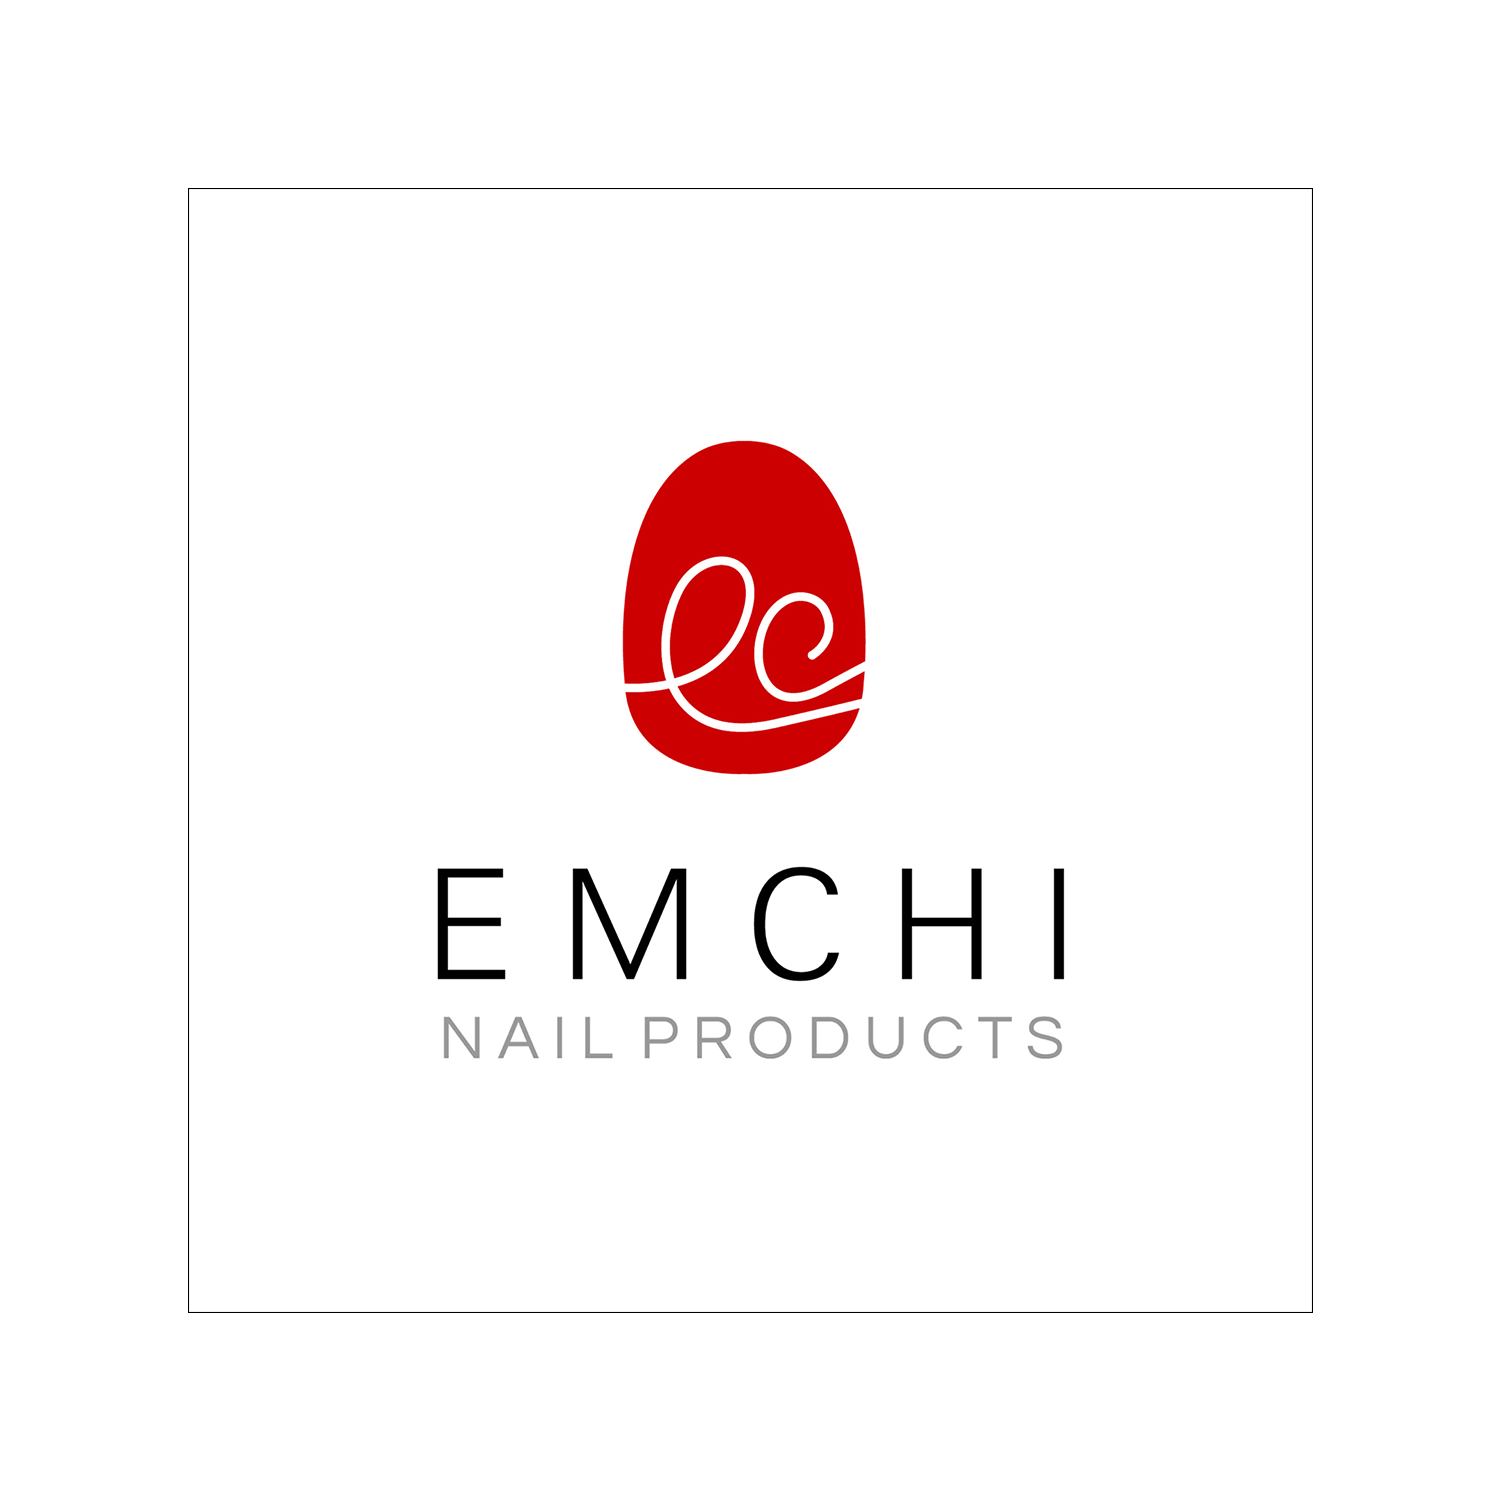 Emchi Nail Products